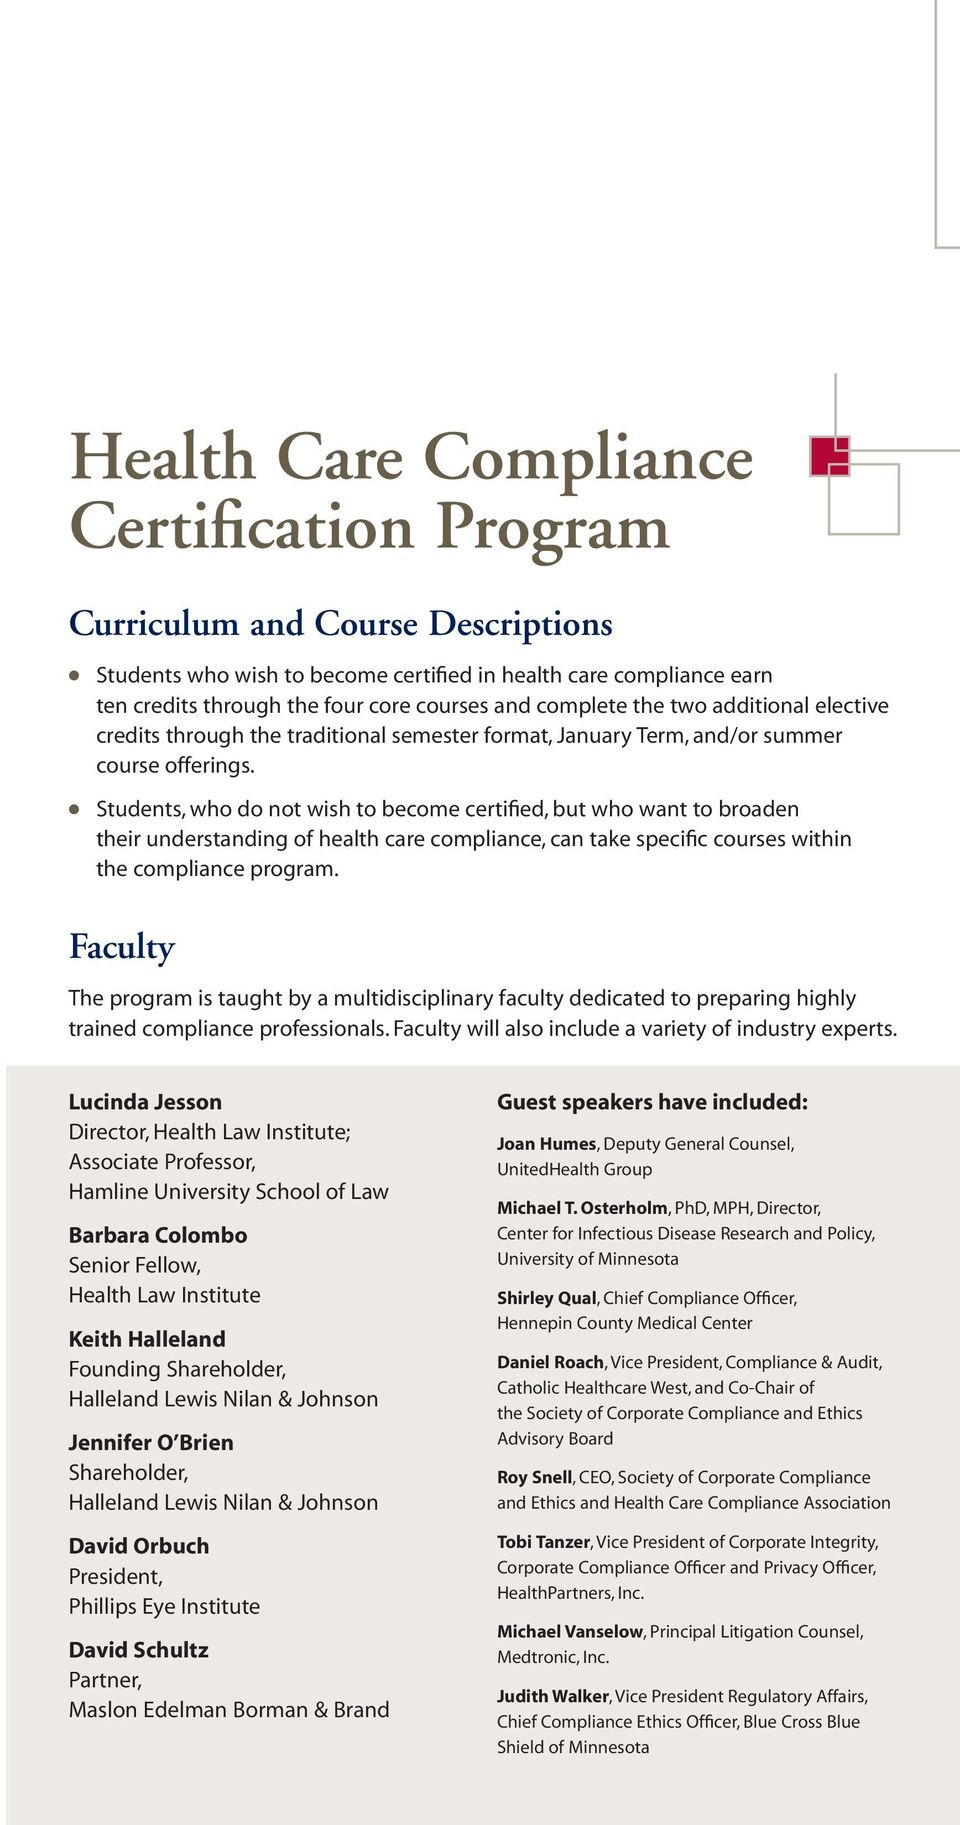 Students, who do not wish to become certified, but who want to broaden their understanding of health care compliance, can take specific courses within the compliance program.